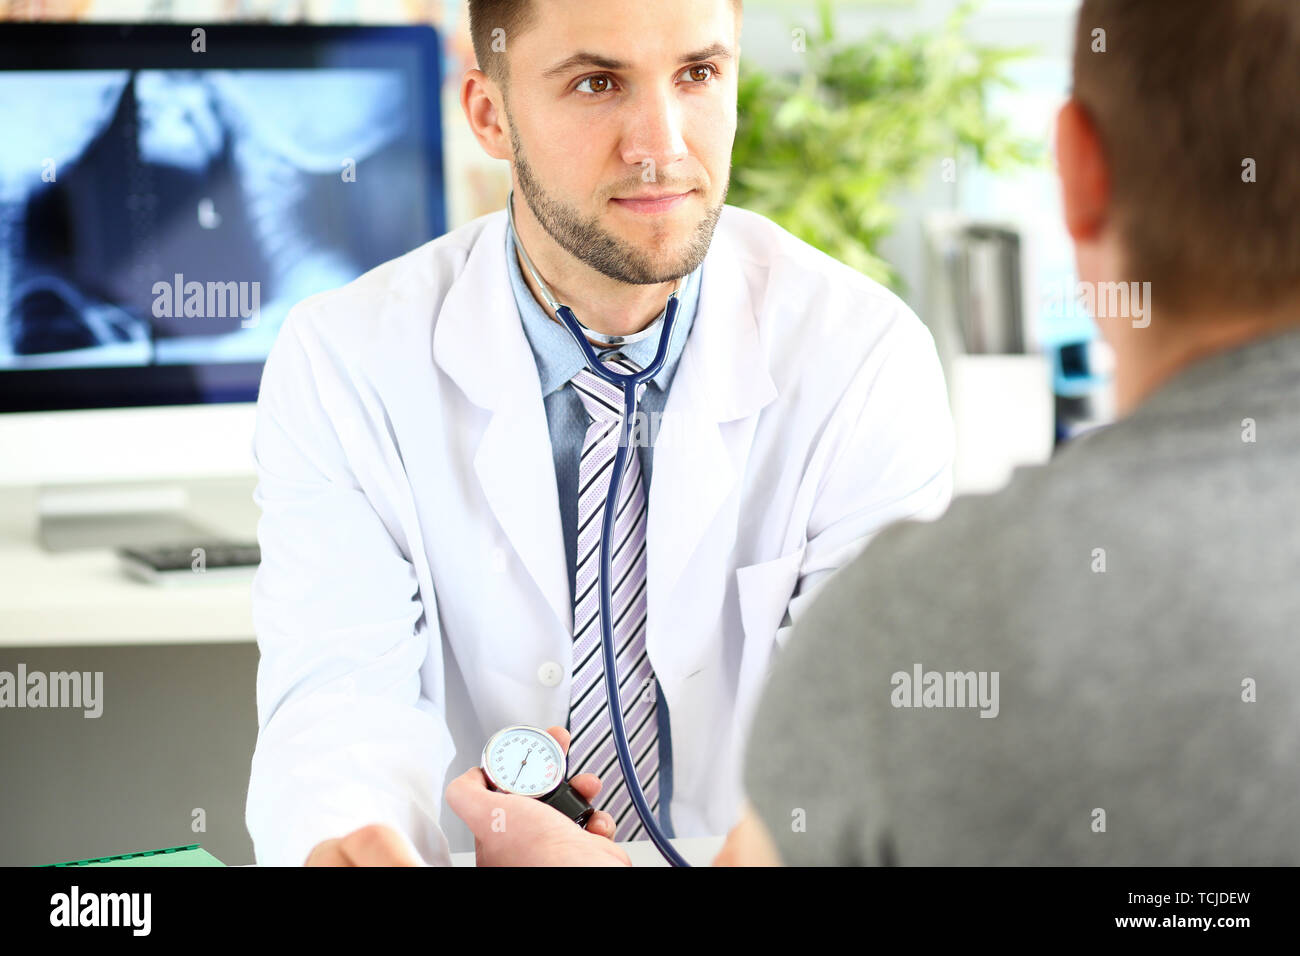 Young specialist in clinic cabinet - Stock Image